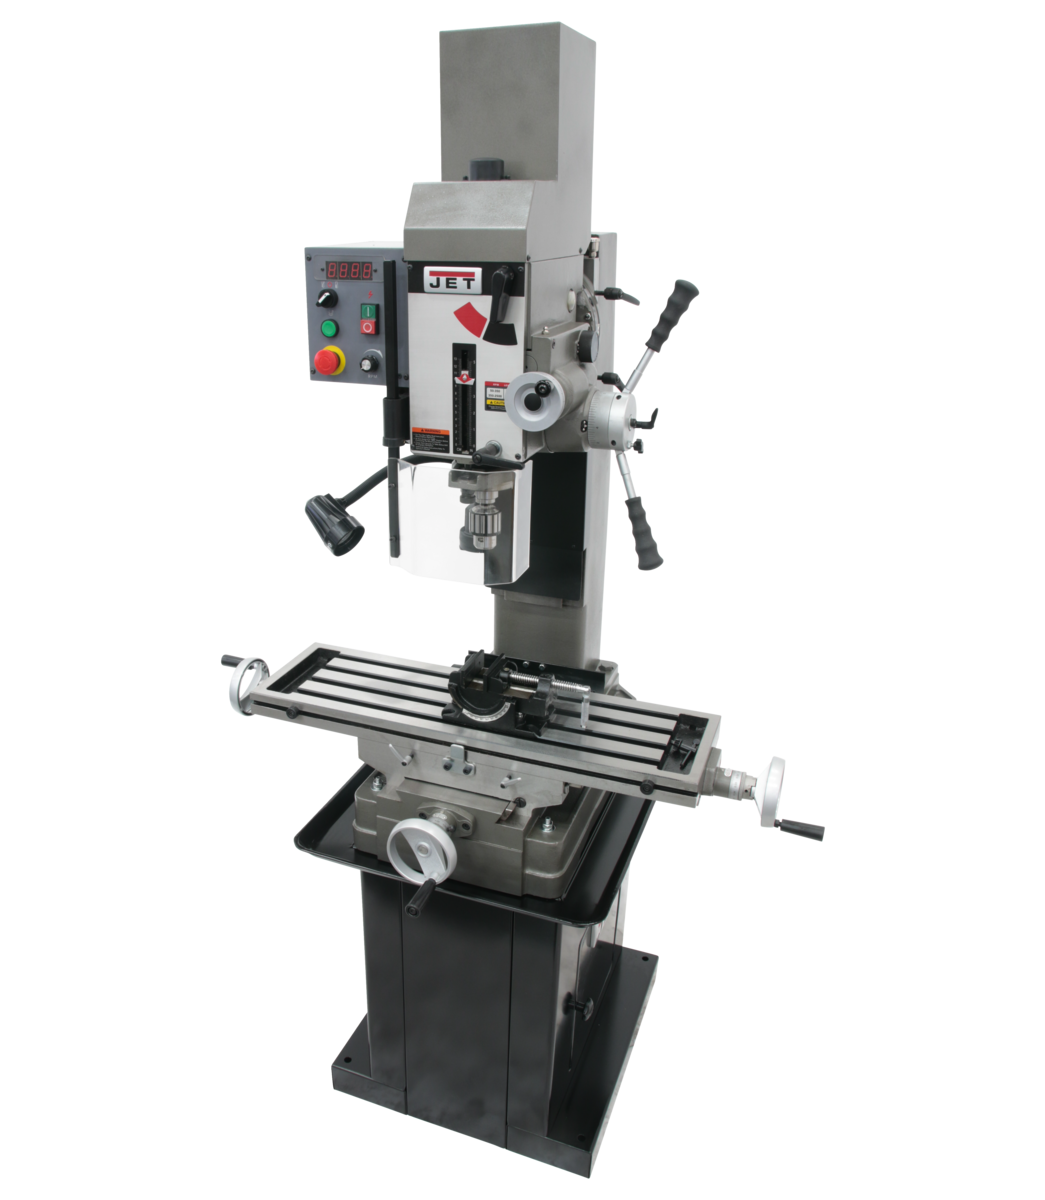 JMD-45VSPFT Variable Speed Geared Head Square Column Mill/Drill with Power Downfeed